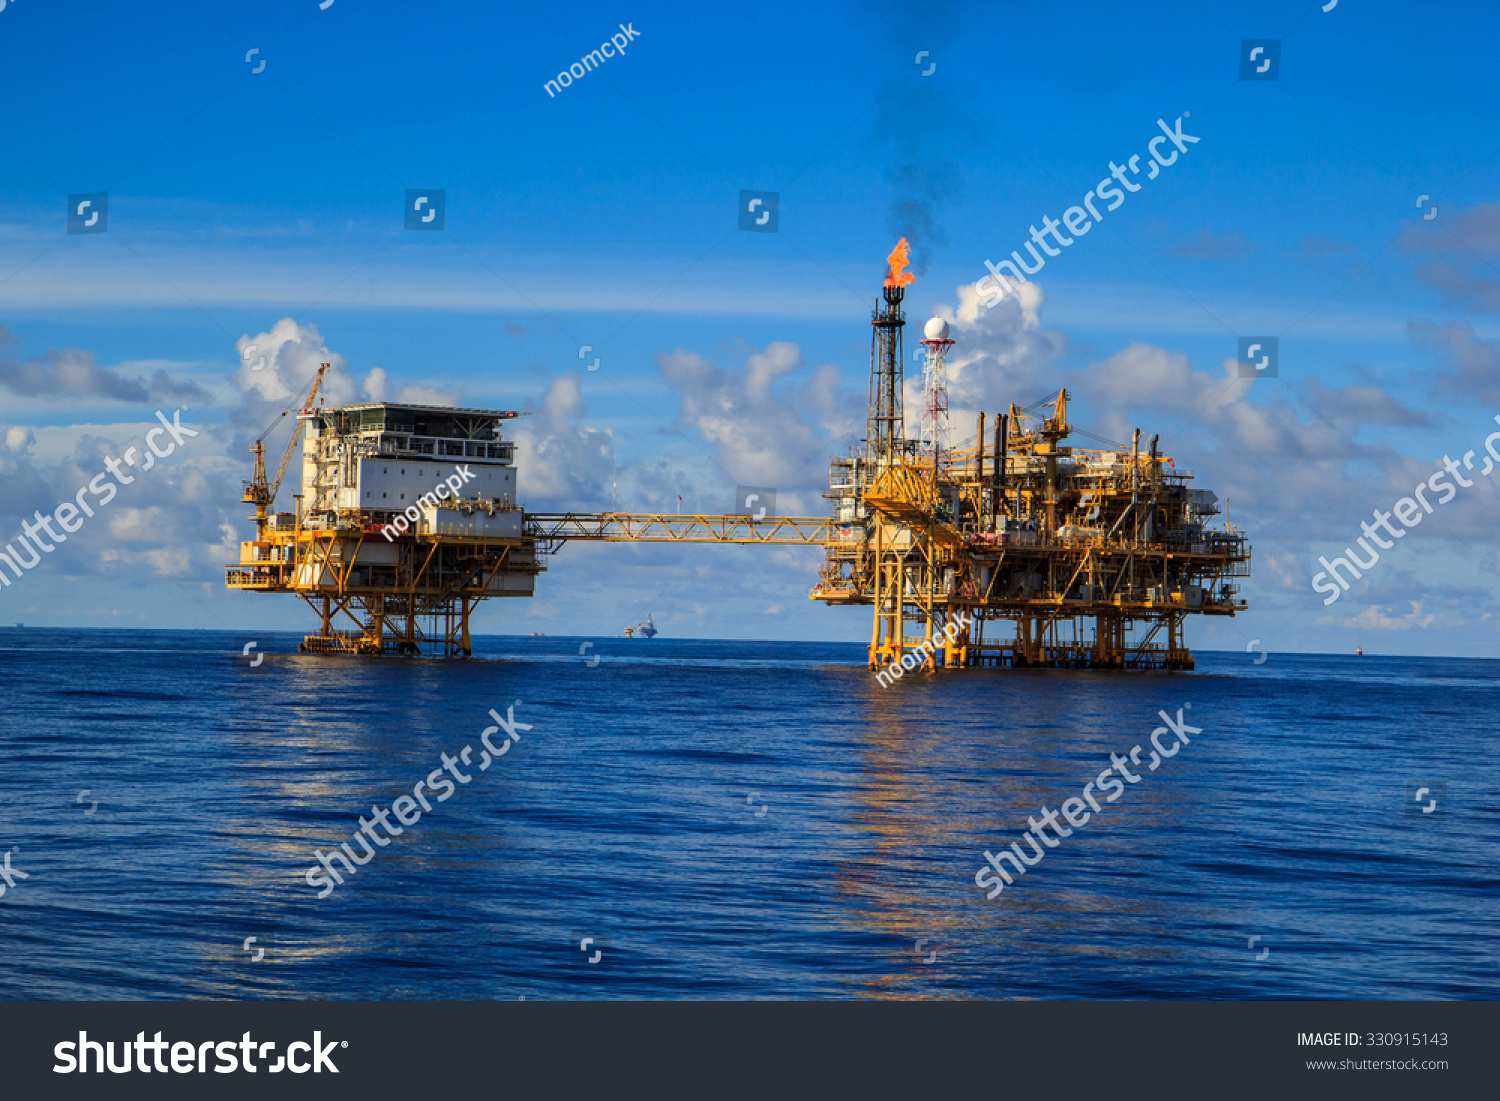 offshore oil and gas industry Spe asia pacific oil & gas conference and exhibition 2018 23/09/2018 - 25/09/2018 as the energy industry adapts to a new status quo operating under sustained low oil prices, there continues to be a need for the industry.